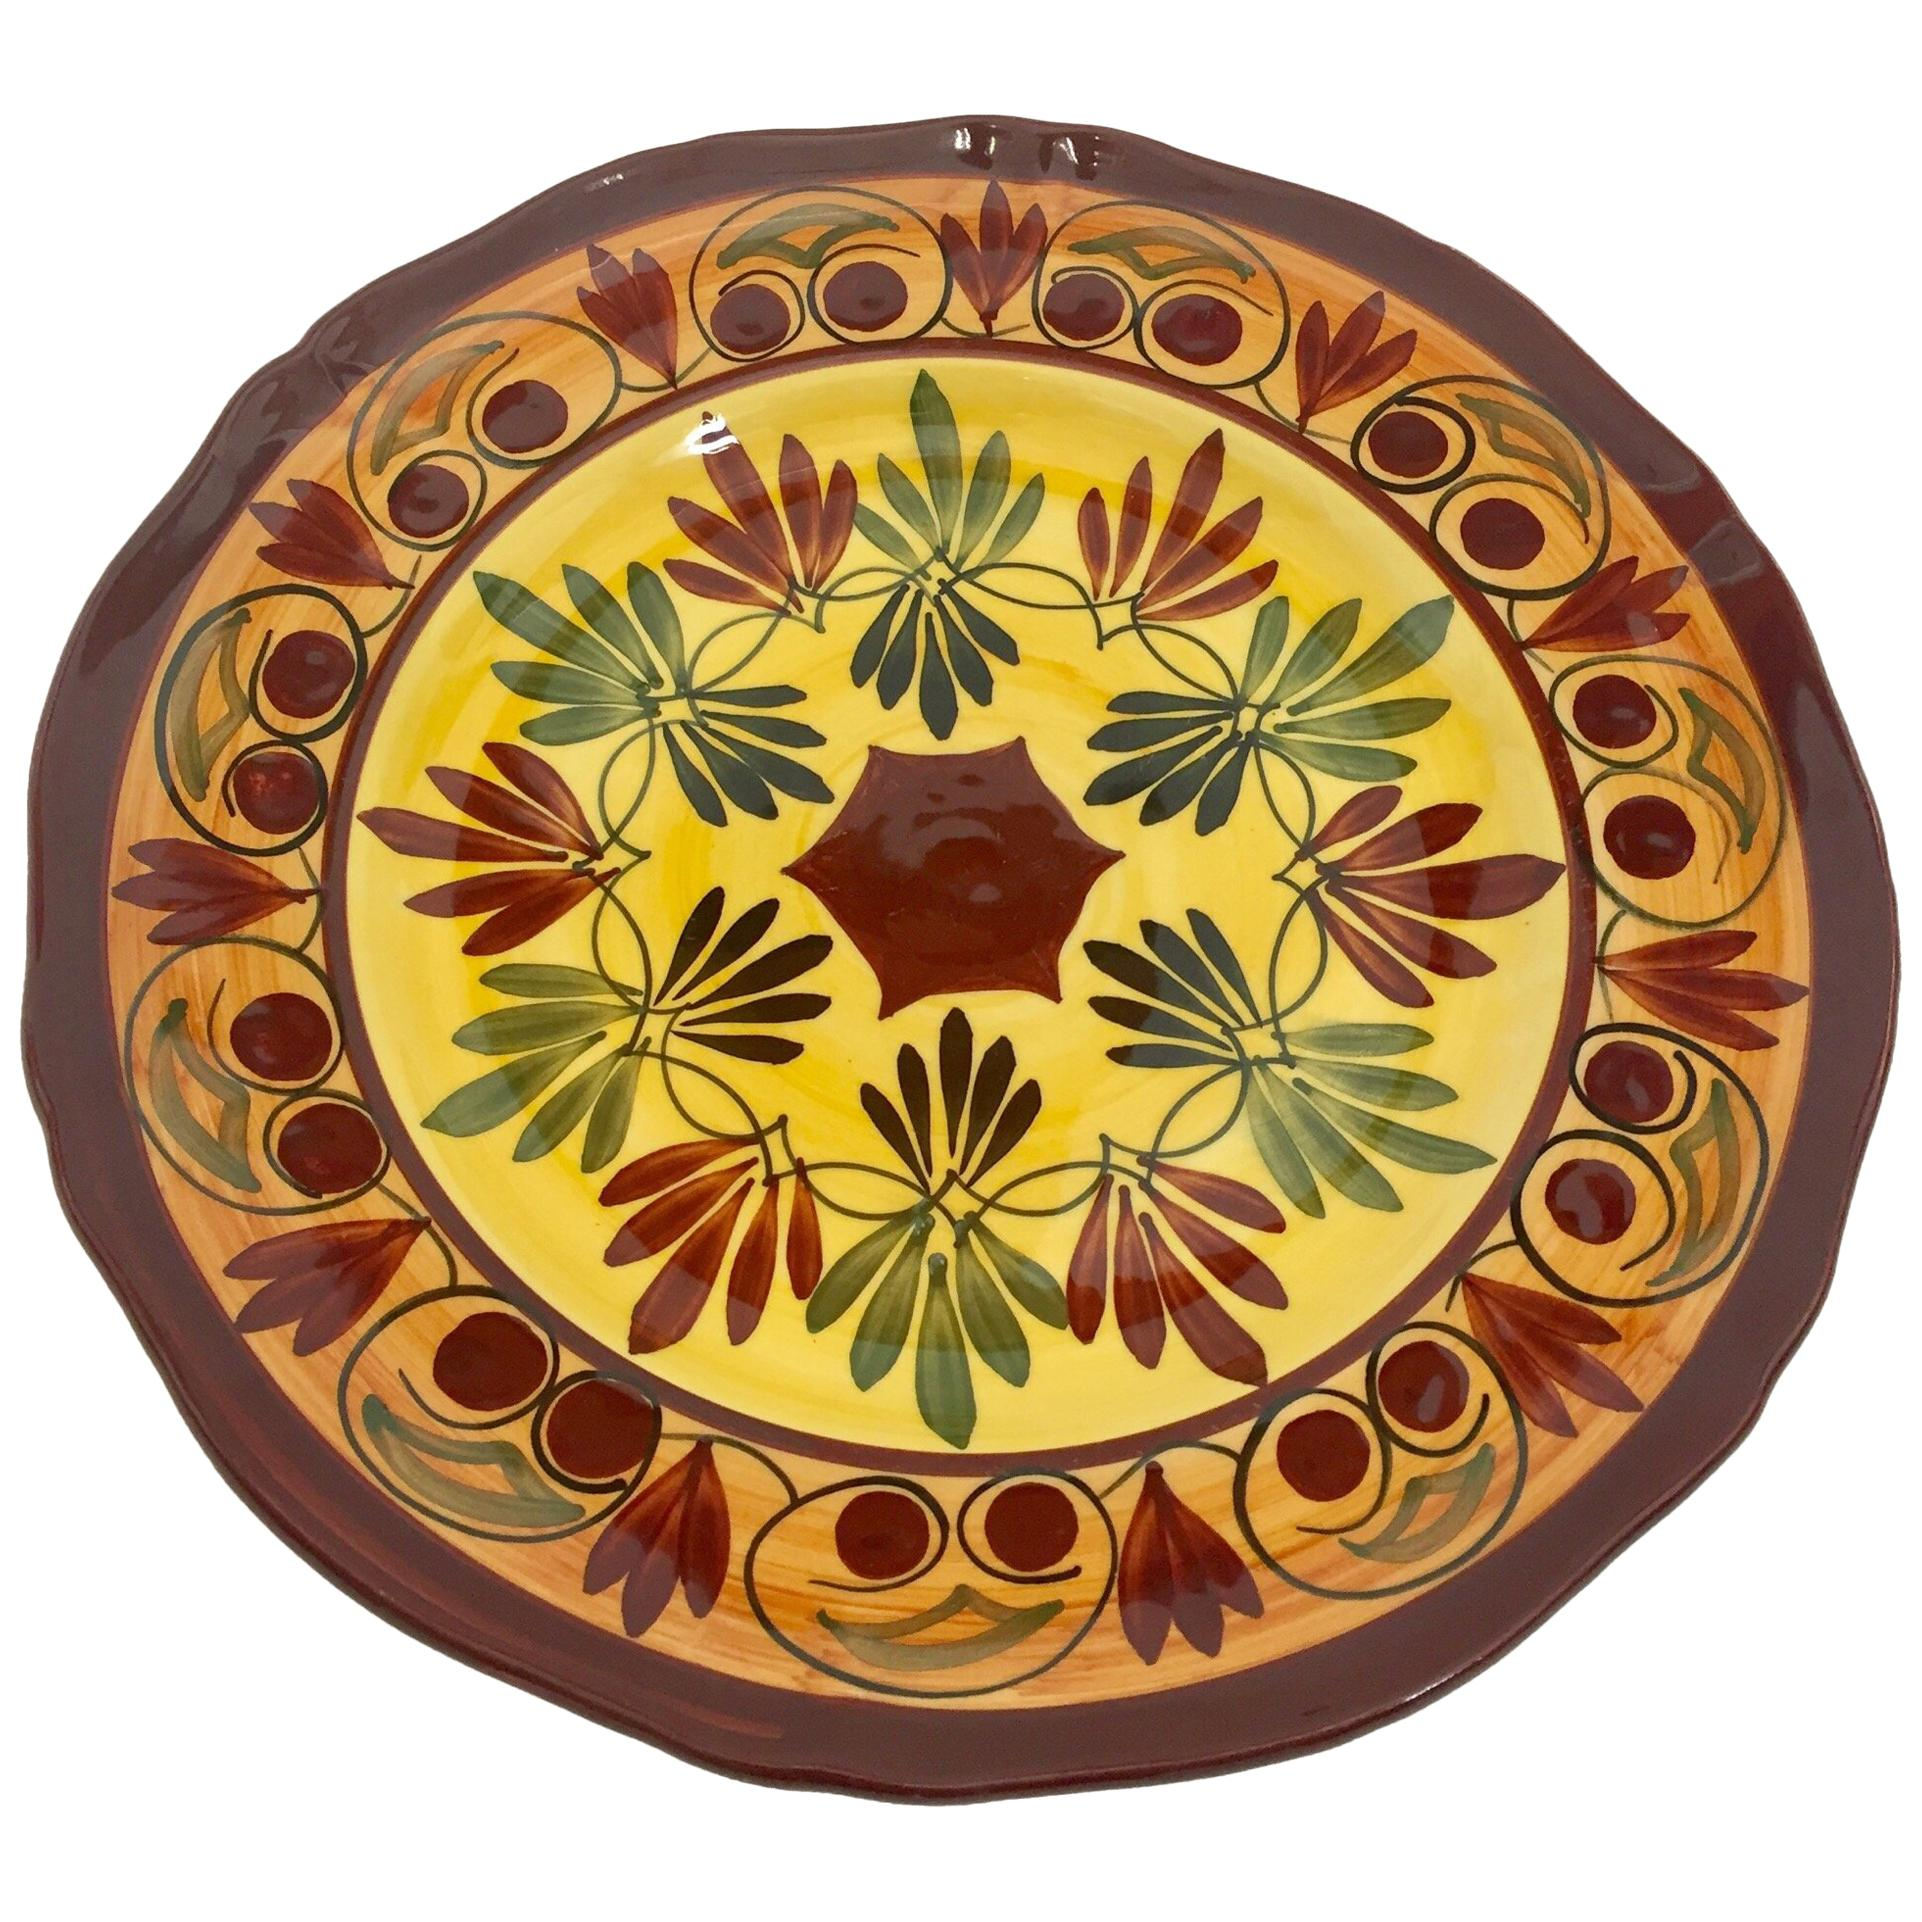 Polychrome Hand Painted French Ceramic Decorative Plate